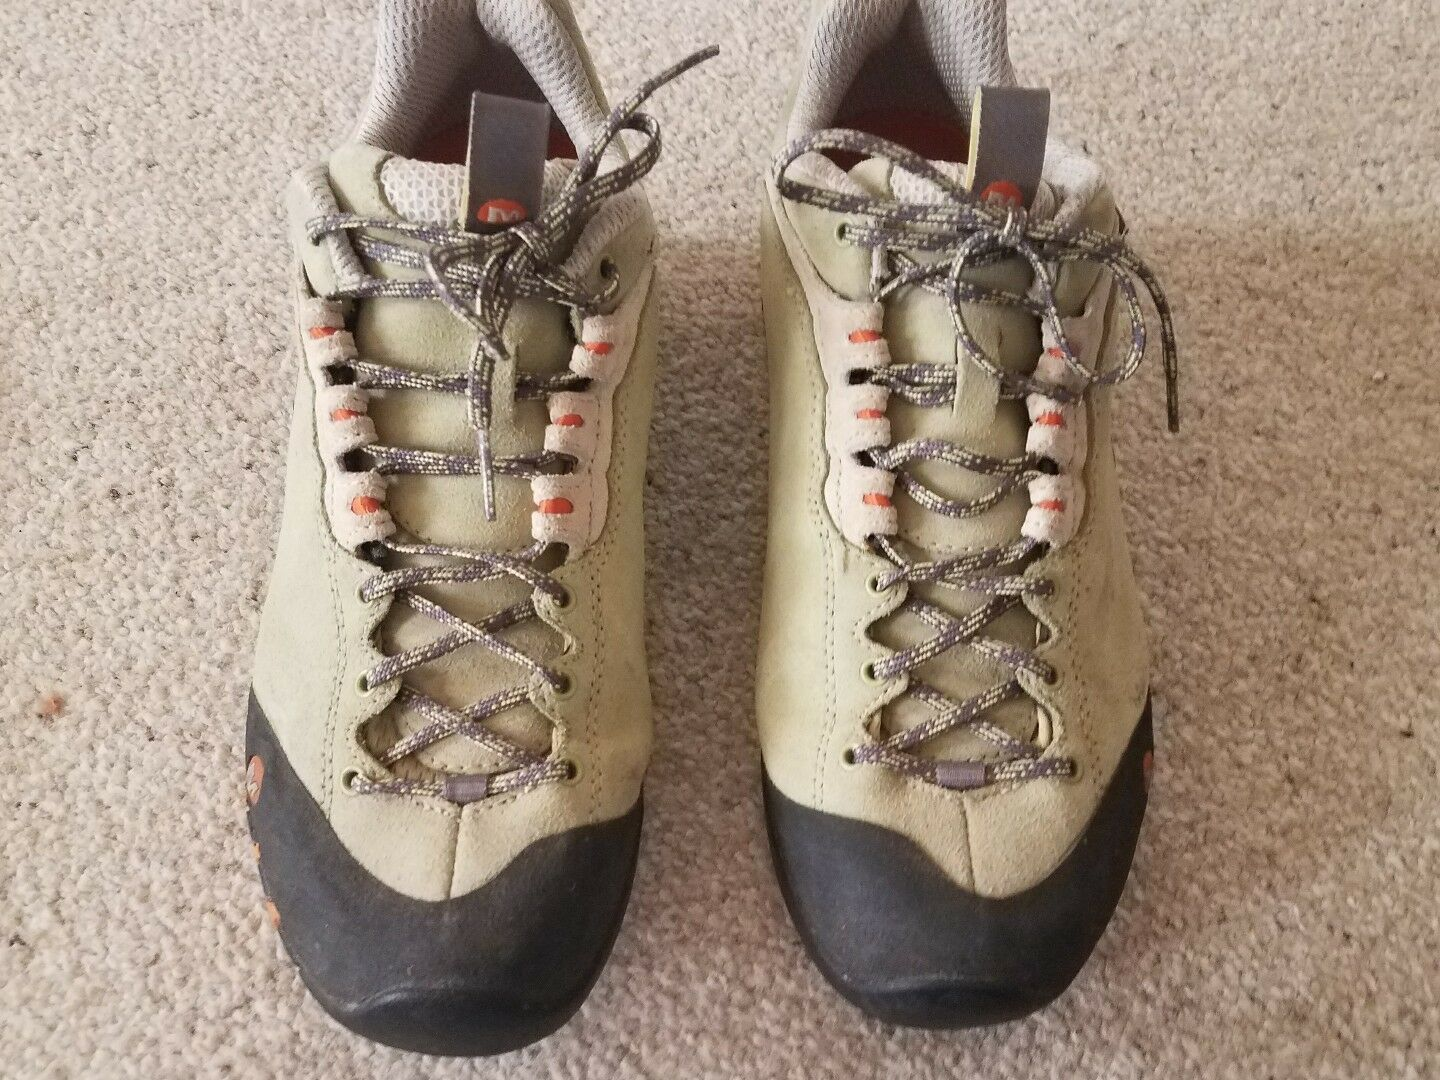 Merrell green ortholite continum air cushion hiking shoes boots womens 8.5